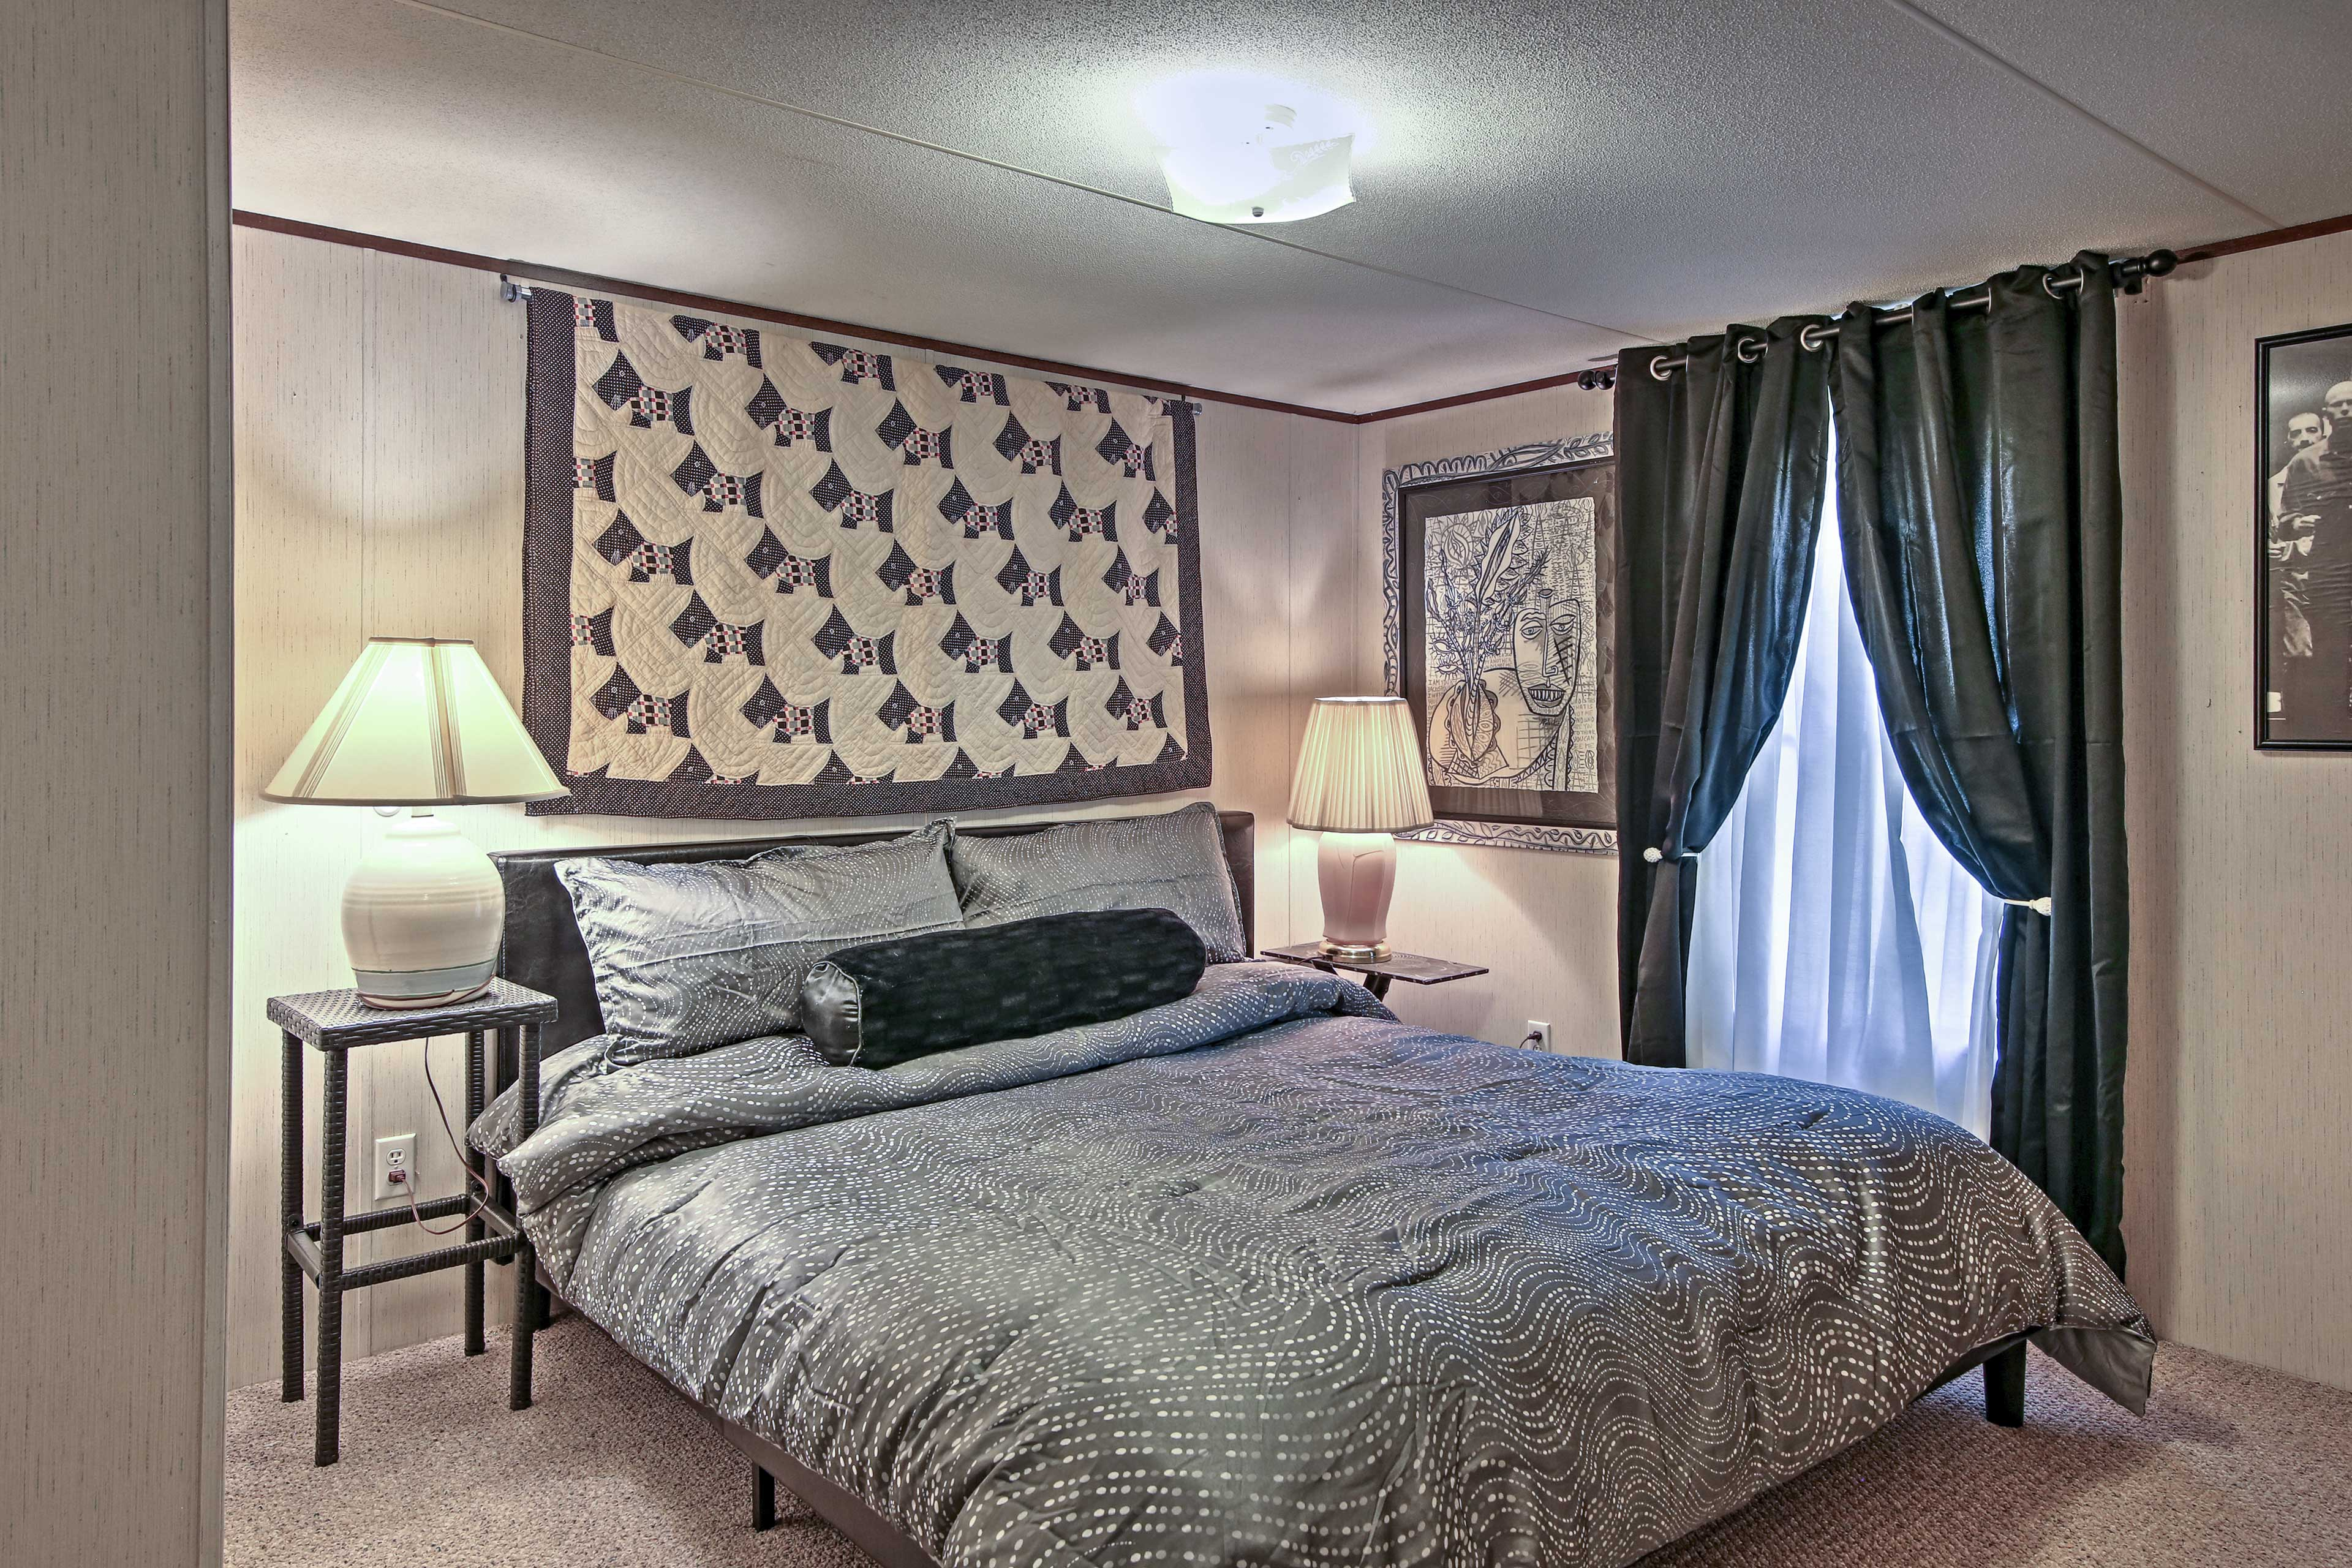 You'll find plush king beds in each bedroom!